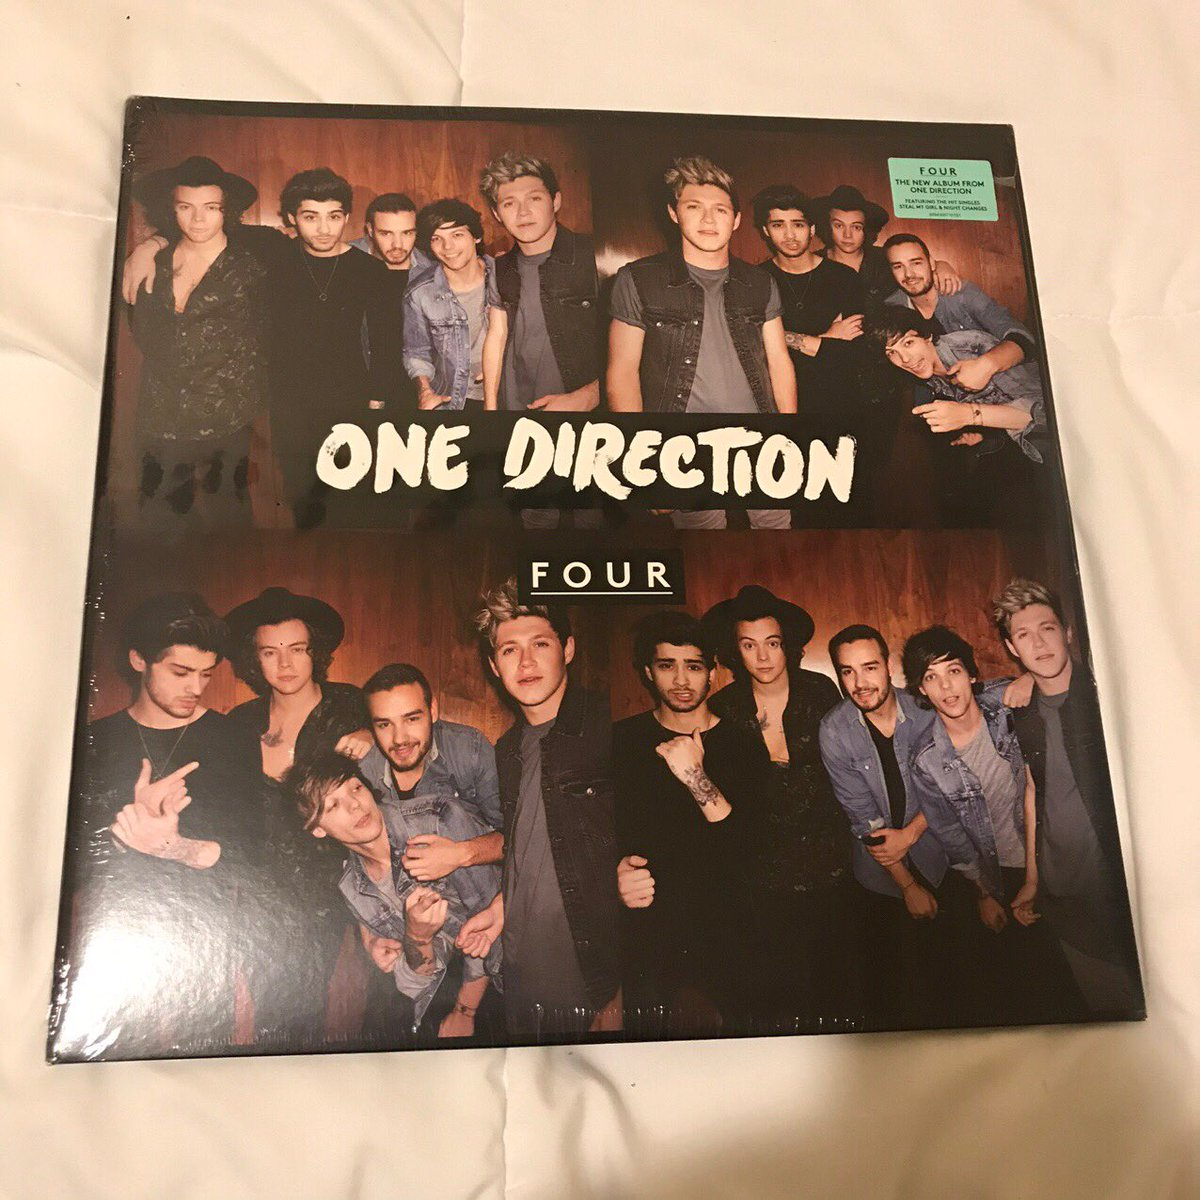 in time for the holidays, i felt like doing about her giveaway! i'm giving away a brand new four one direction vinyl that i got a while ago and never opened.   how to enter: -rt/ like this -follow me (extra entry options below)  ENDS DECEMBER 15TH